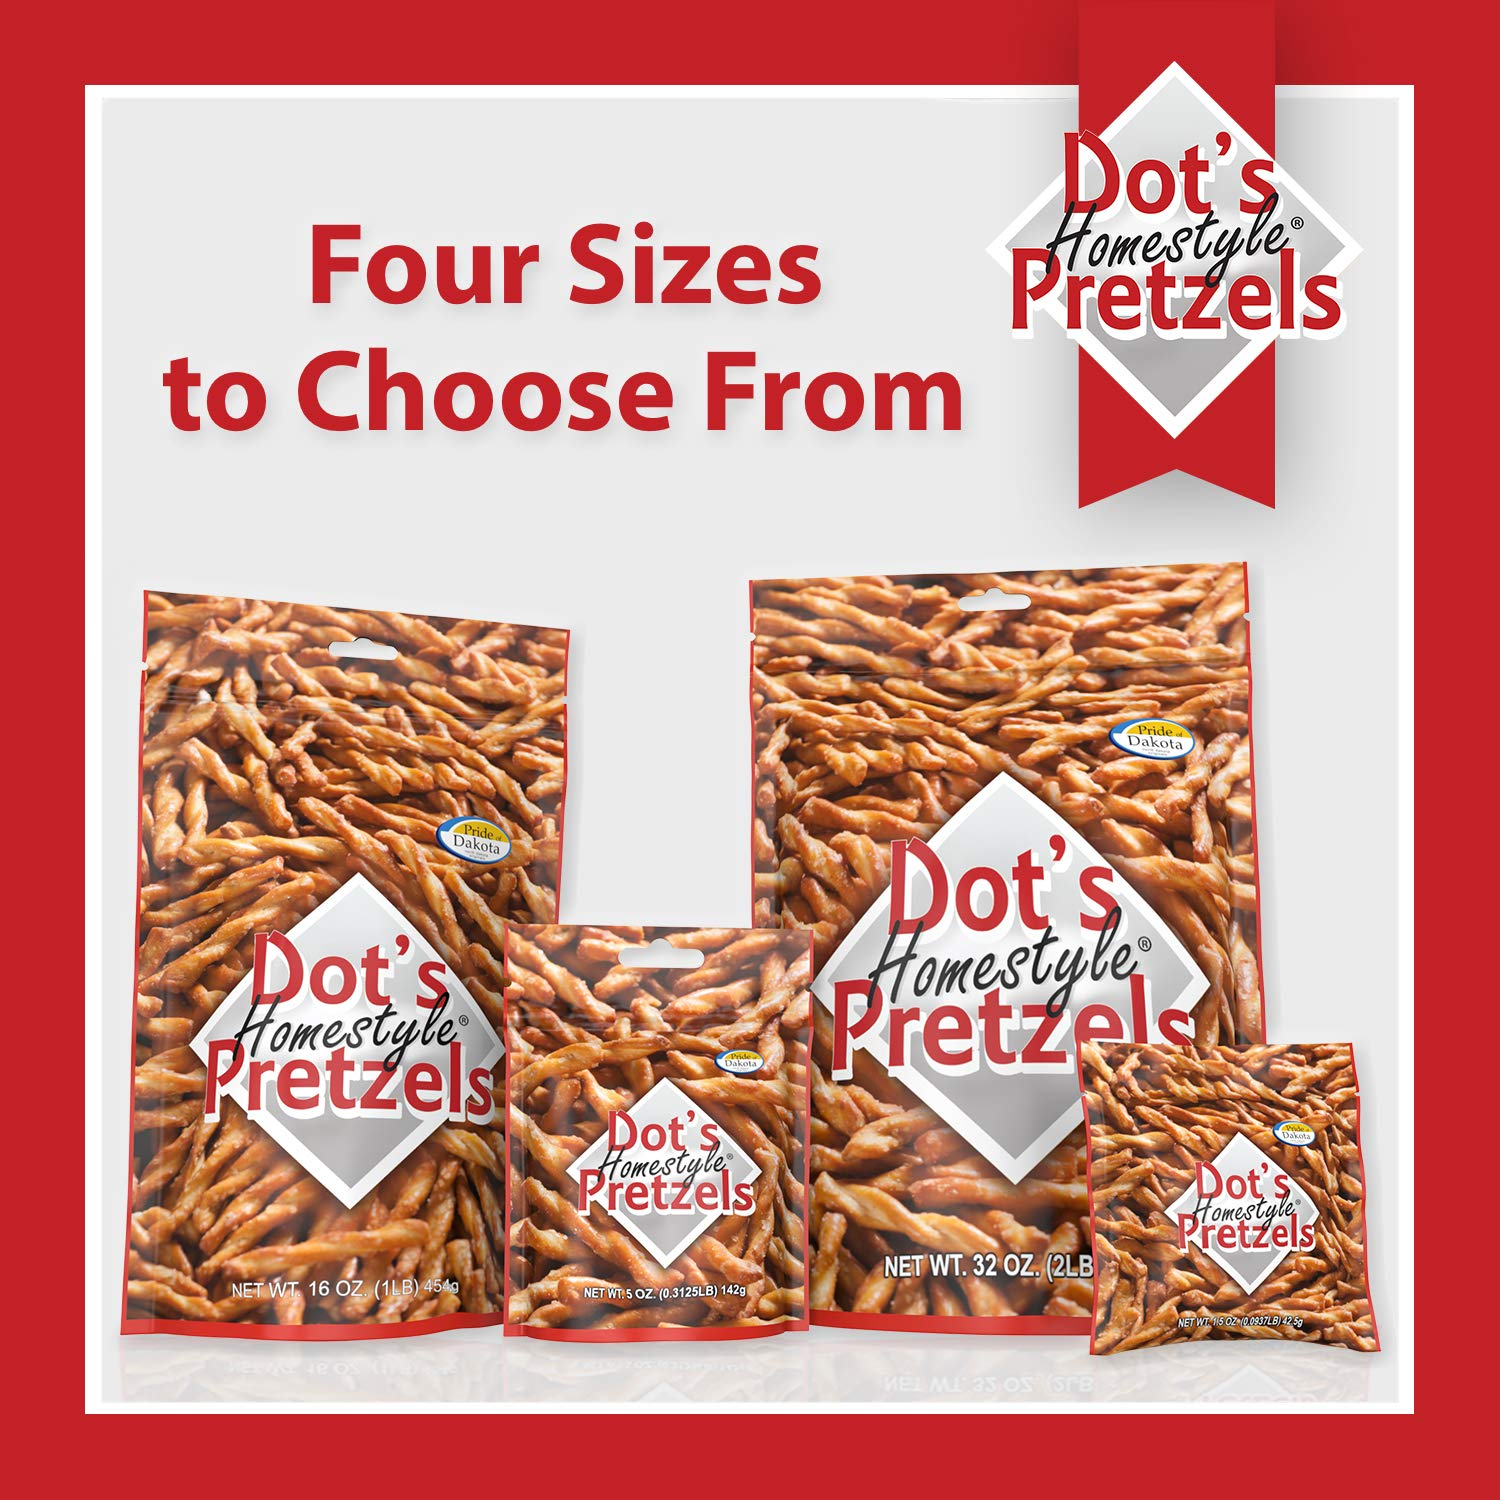 Dot's Homestyle Pretzels 5 oz. Bags (10 Pack) Snack Sized Seasoned Pretzel Snack Sticks by Dot's Homestyle Pretzels (Image #2)